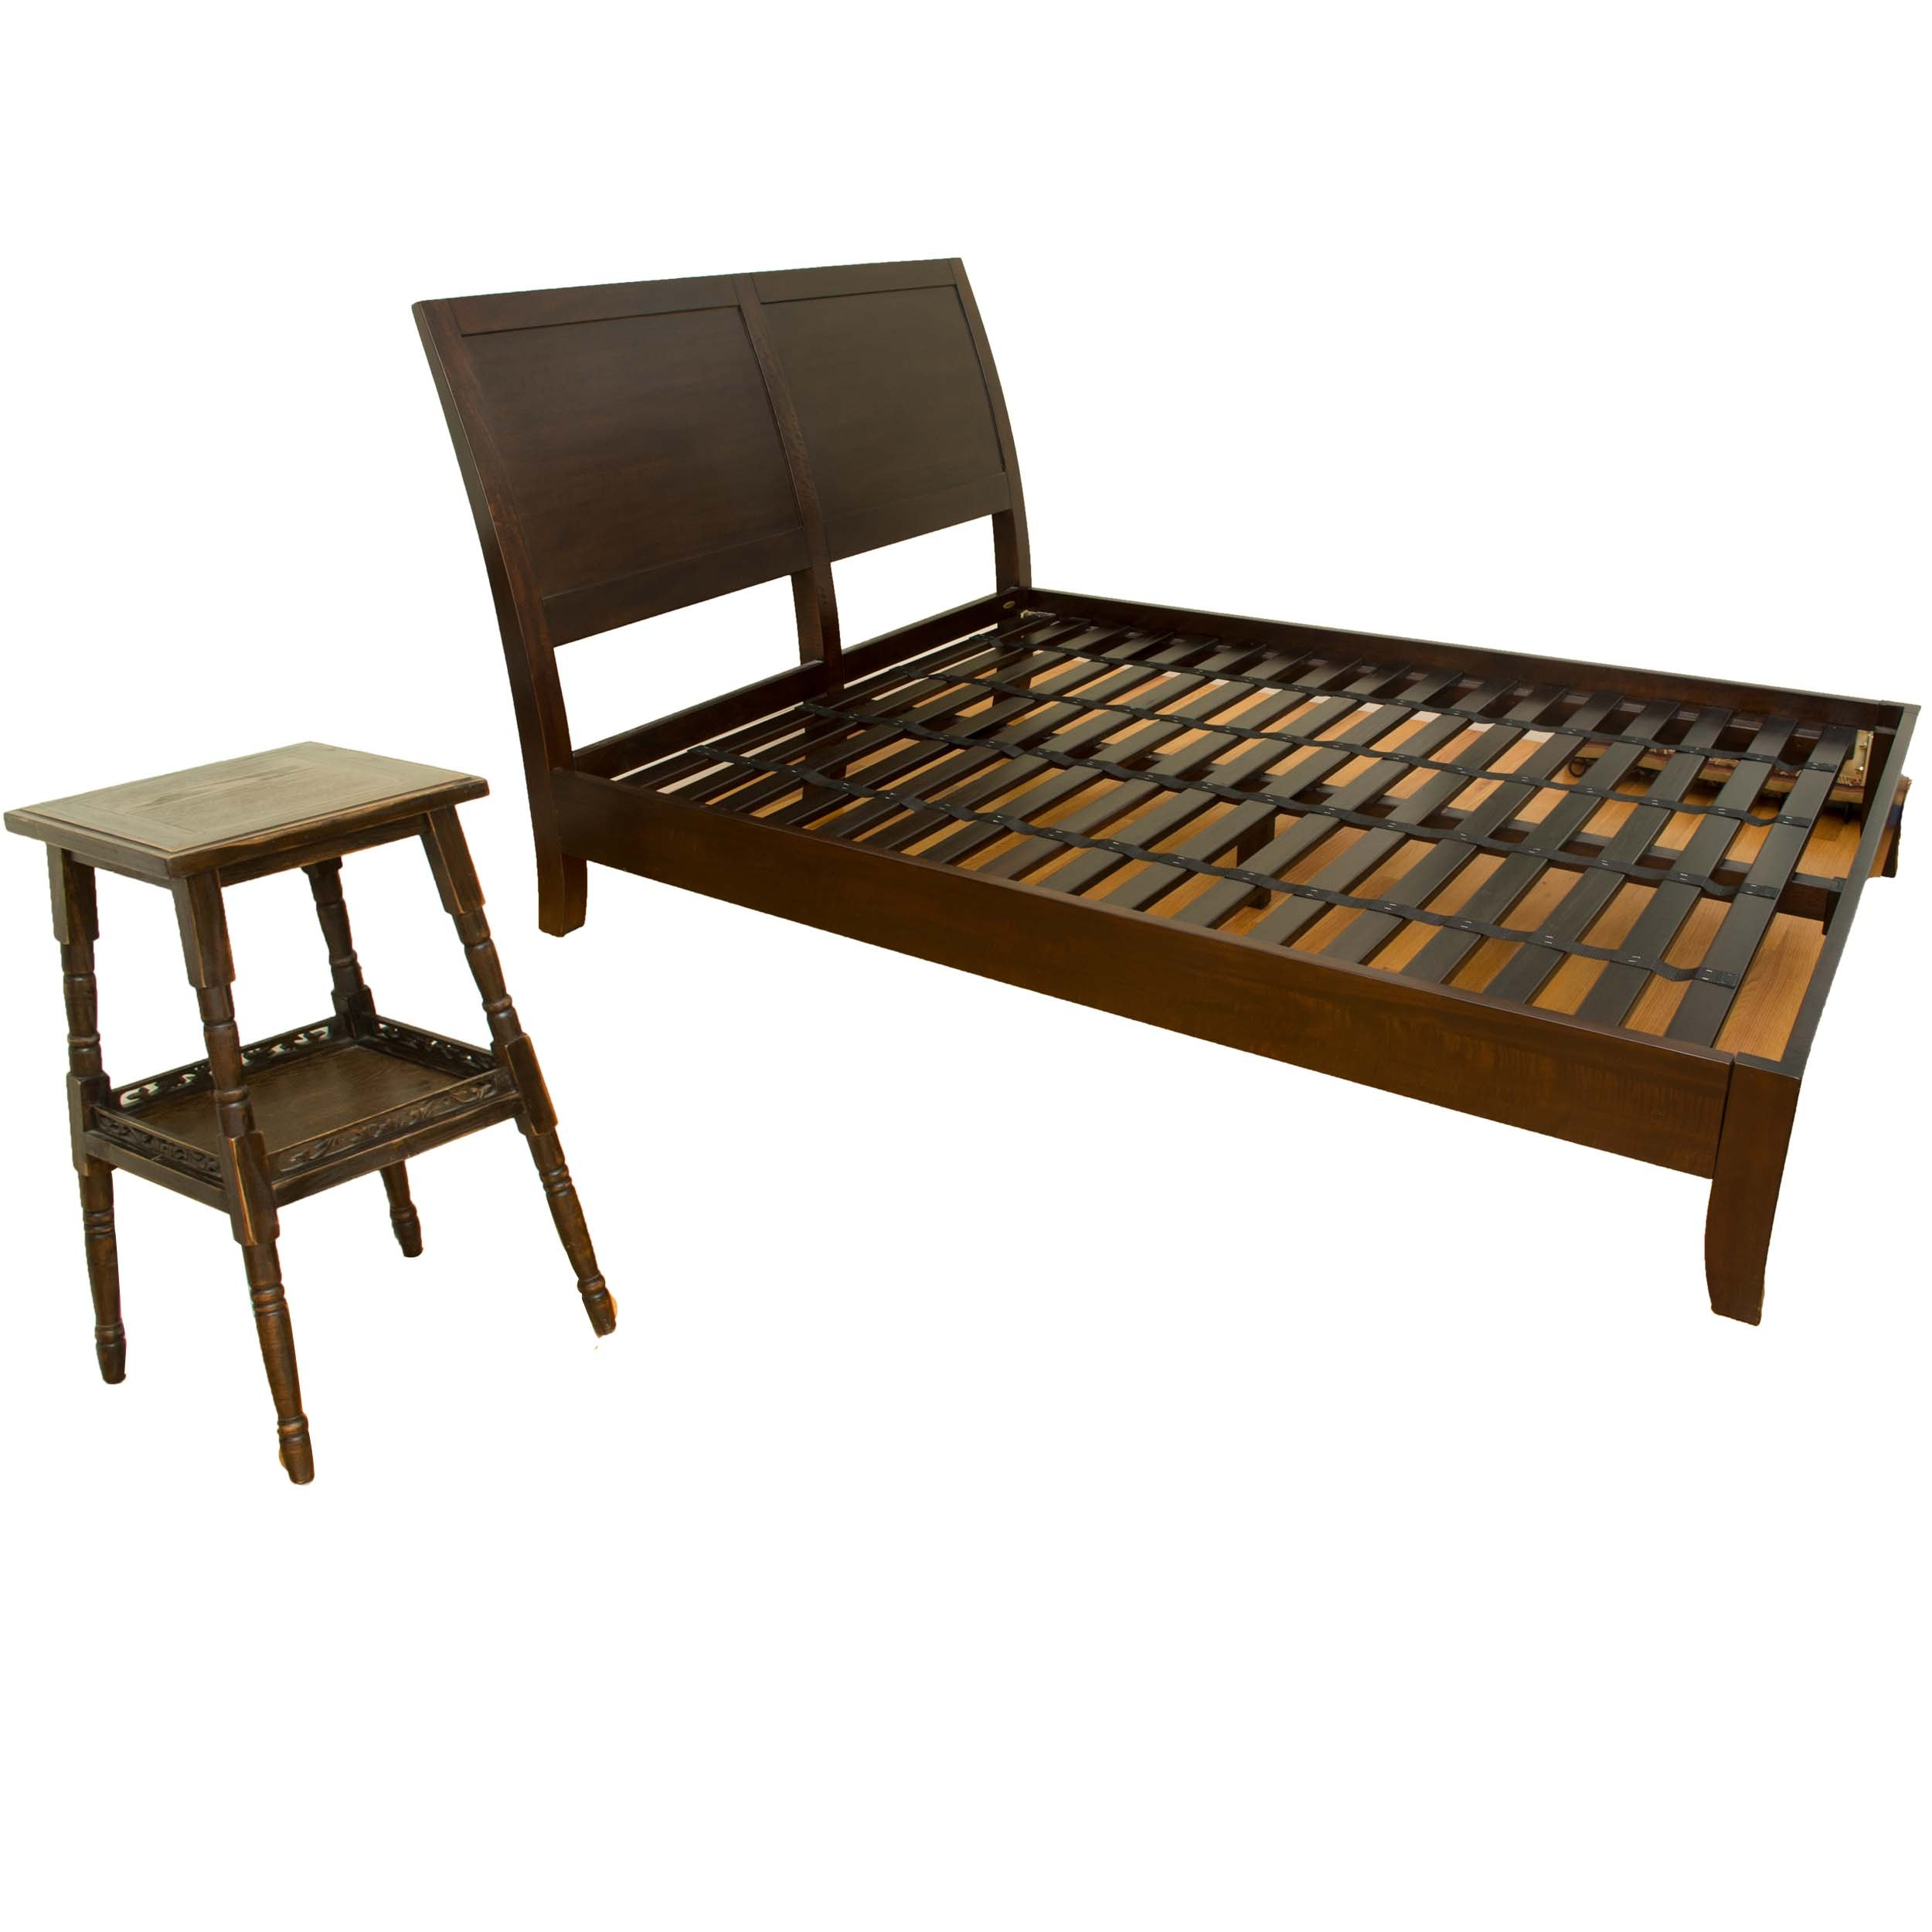 Platform Bed and Side Table in Walnut Stain